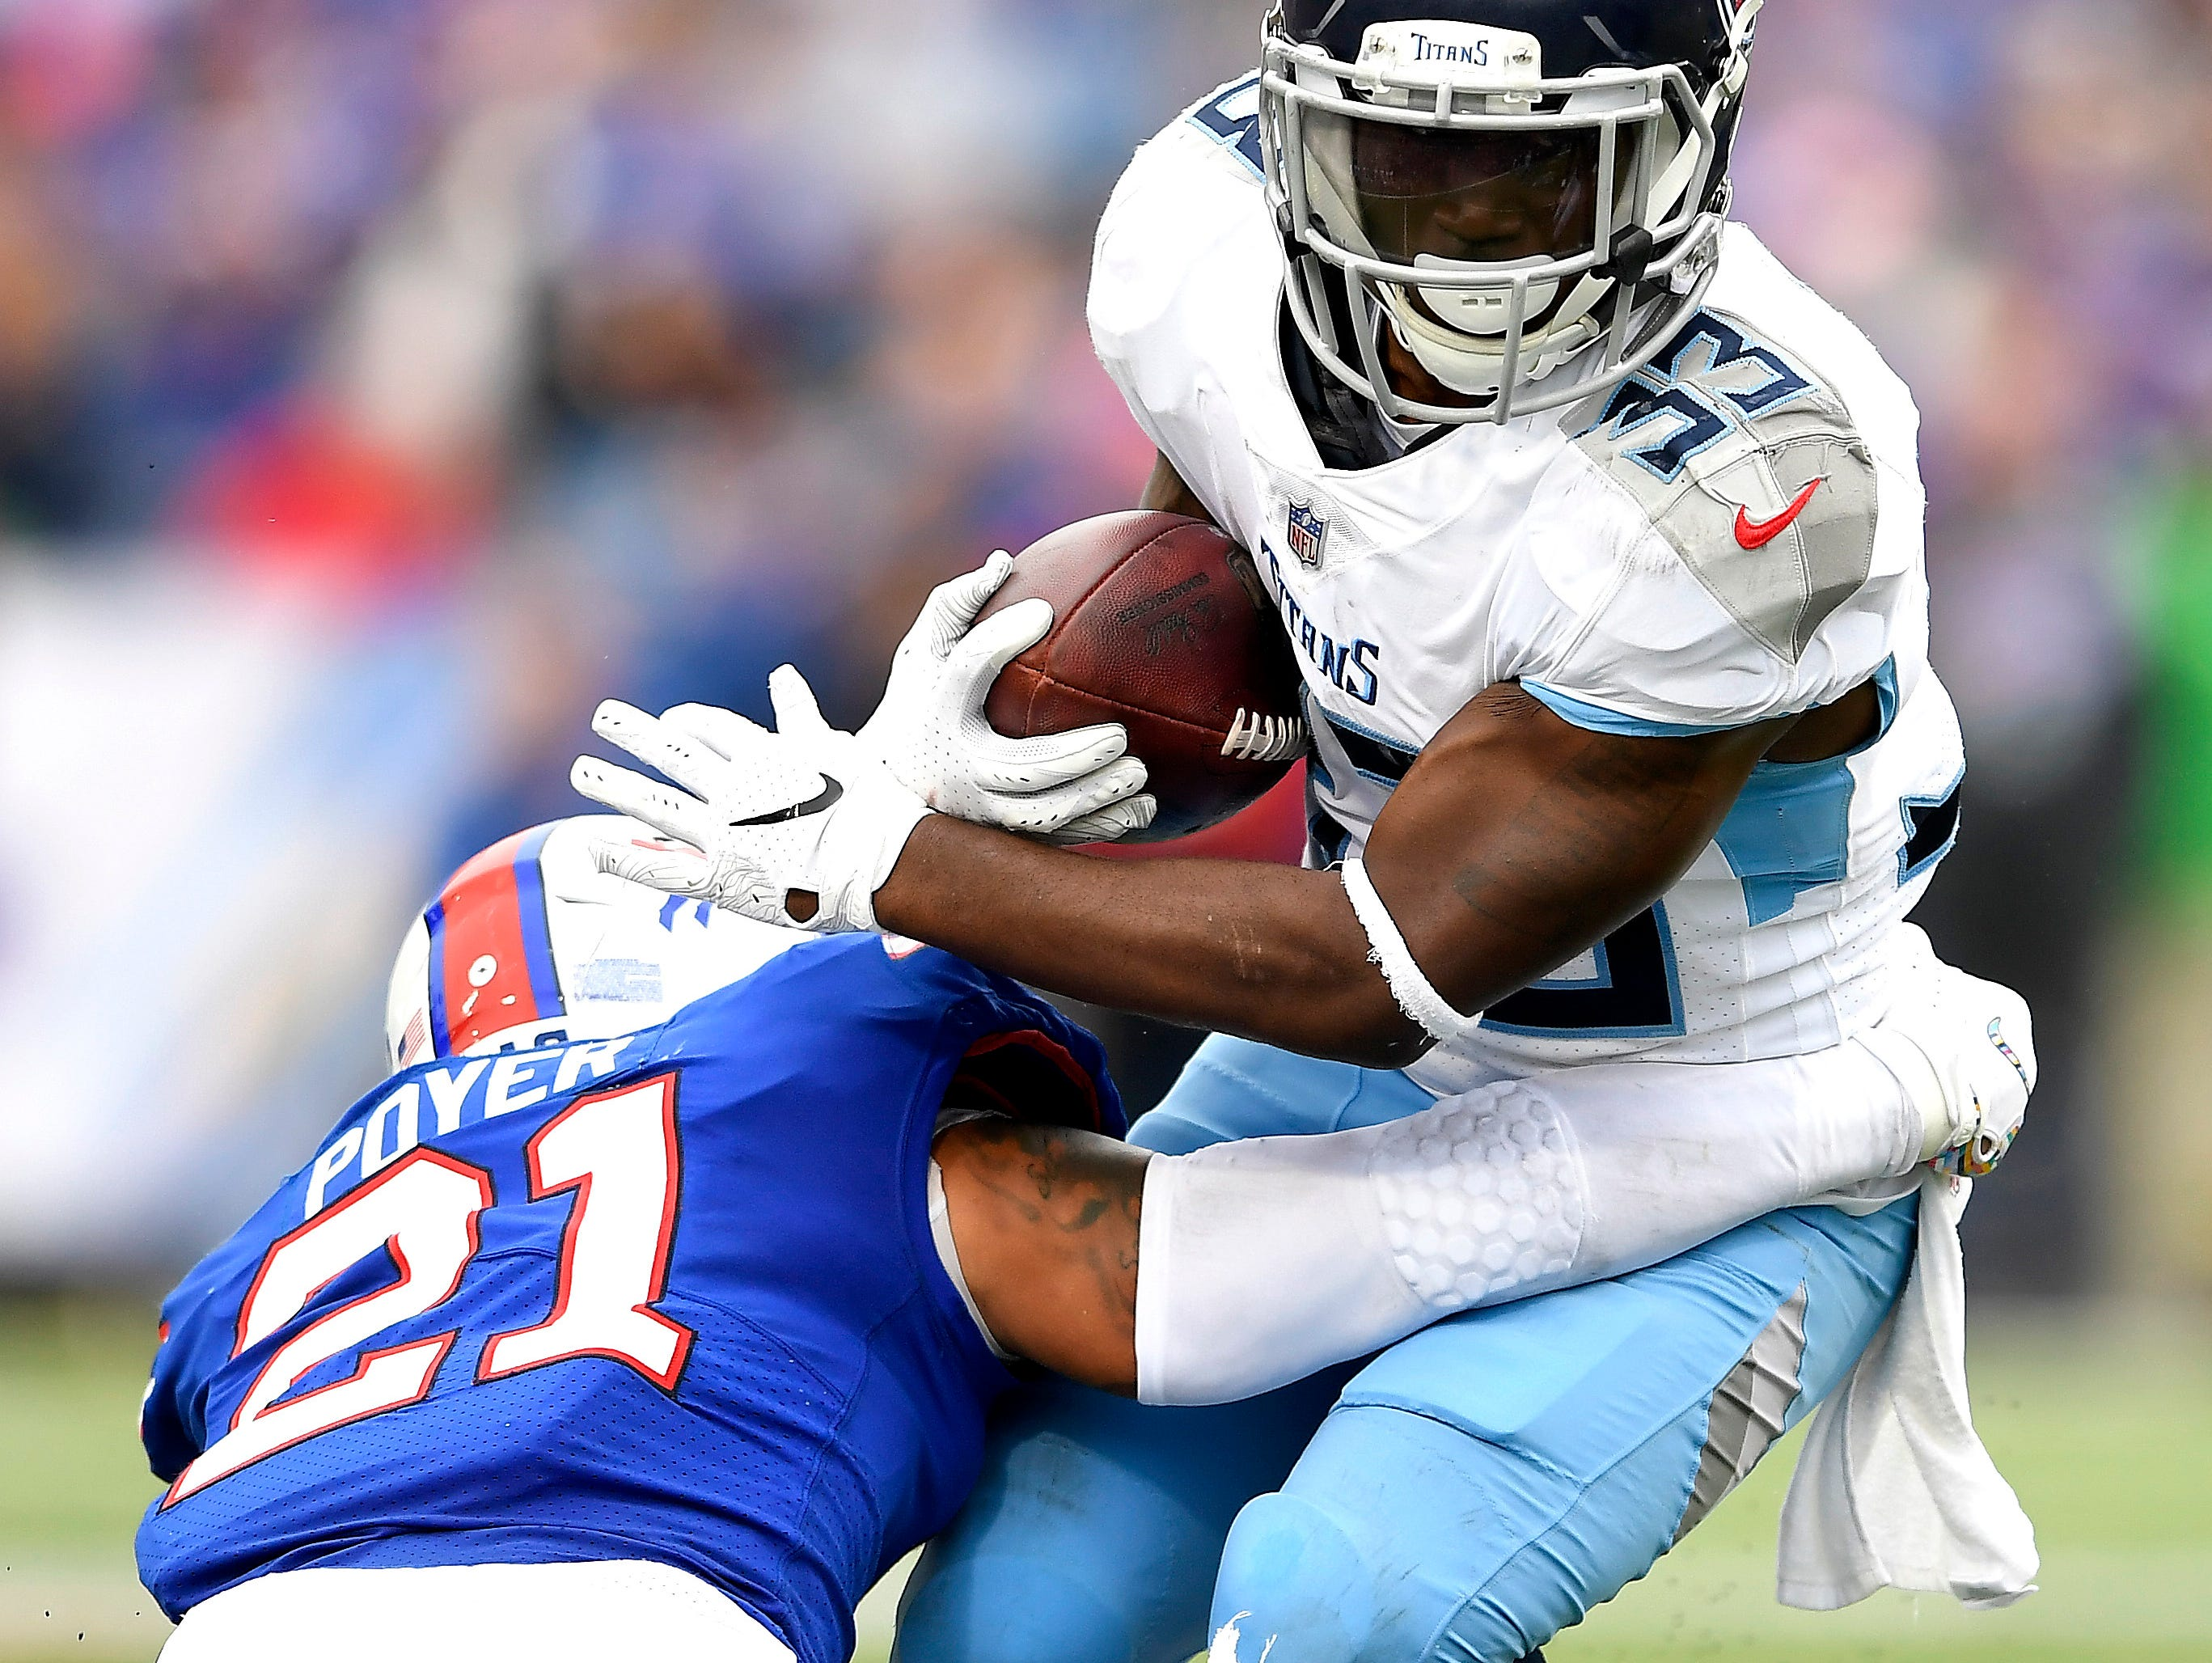 Buffalo Bills free safety Jordan Poyer (21) applies a tackle on Tennessee Titans running back Dion Lewis (33) during the second half of an NFL football game, Sunday, Oct. 7, 2018, in Orchard Park, N.Y. The Bills won 13-12. (AP Photo/Adrian Kraus)